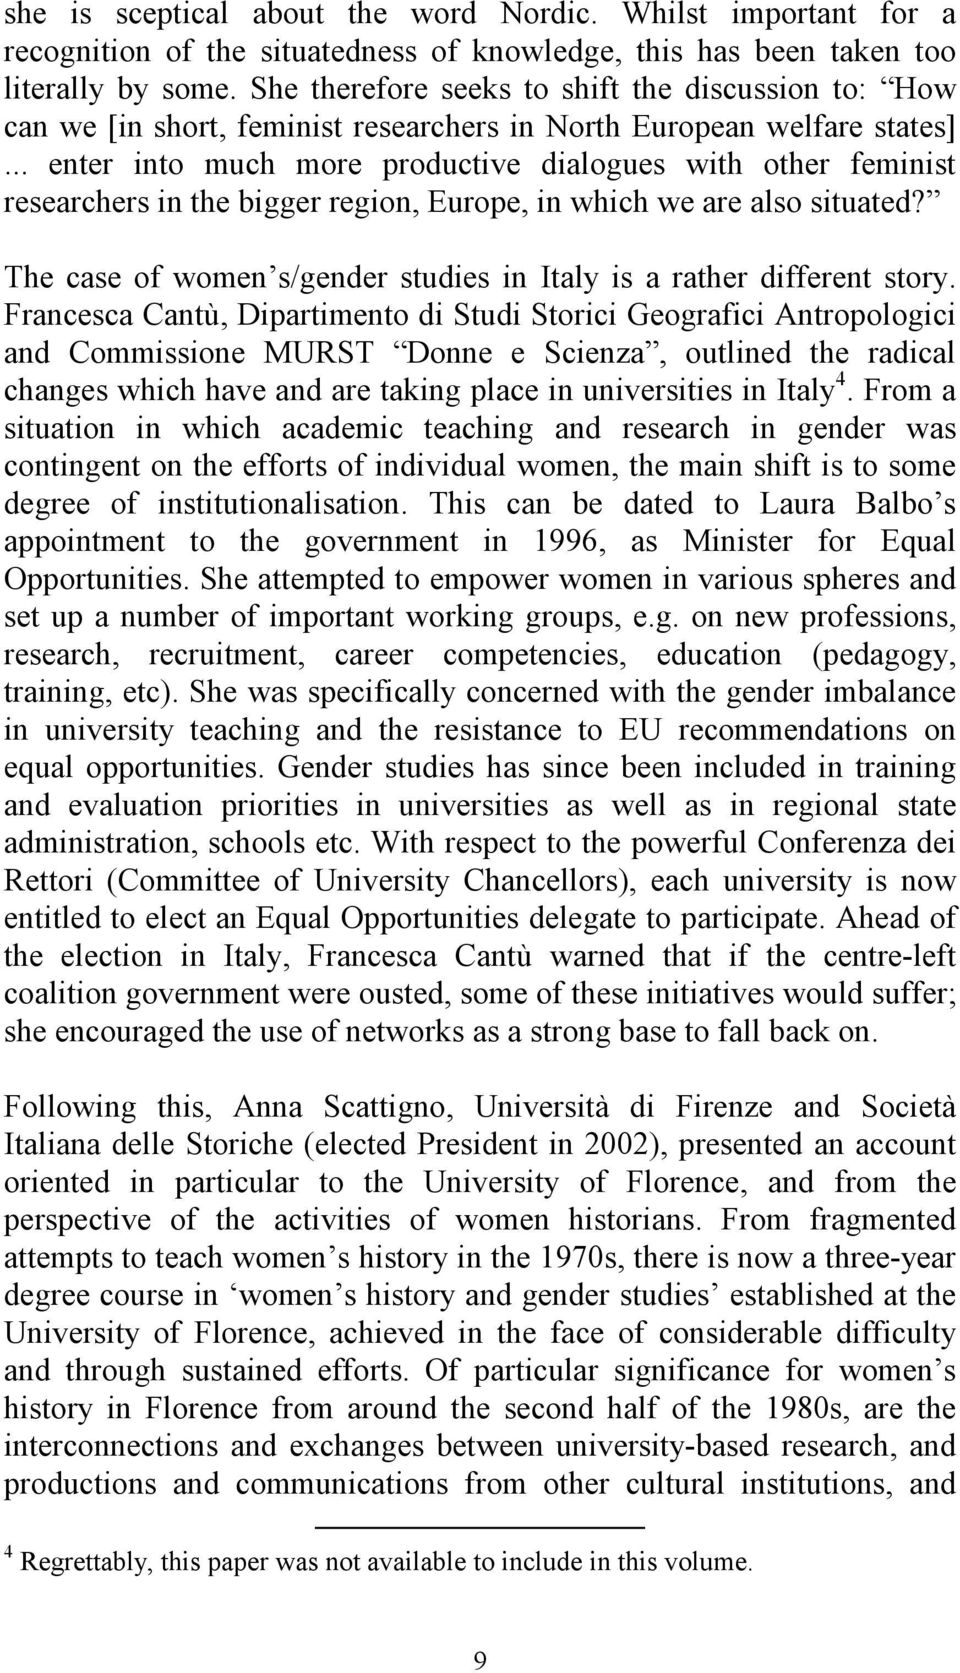 .. enter into much more productive dialogues with other feminist researchers in the bigger region, Europe, in which we are also situated?